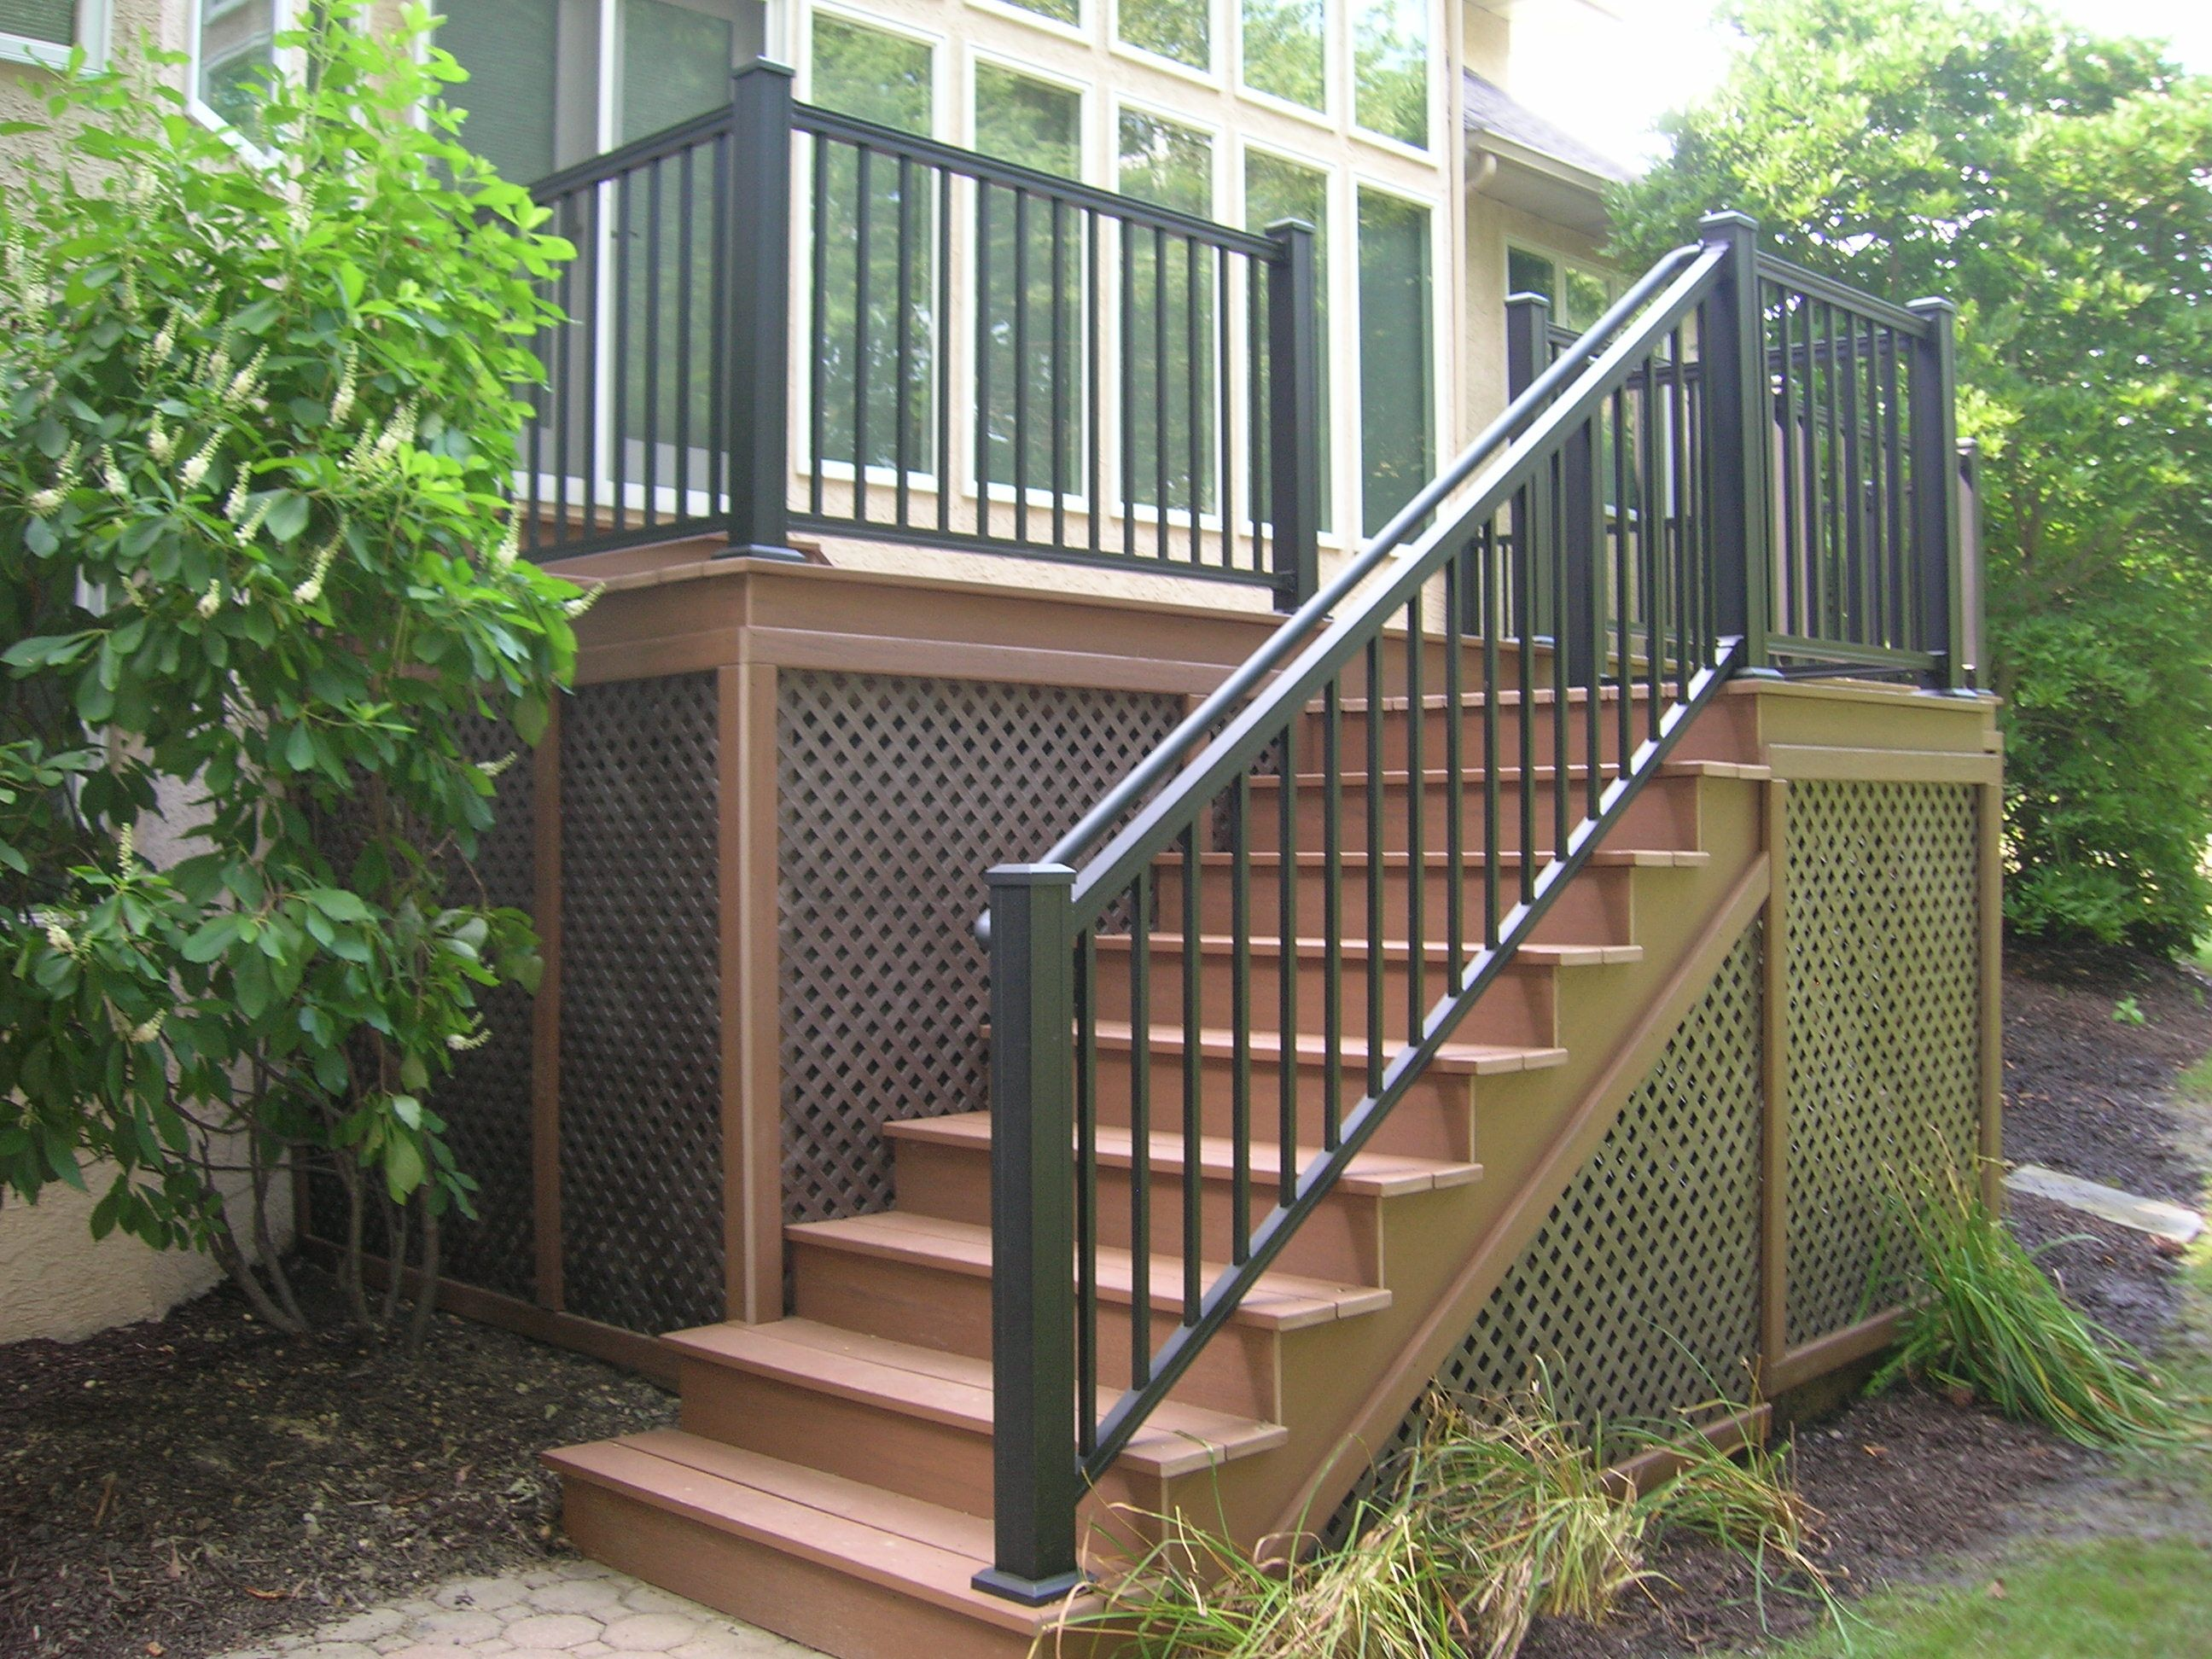 Palisade Railing Outdoor Stair Railing Railings Outdoor   Vinyl Stair Railing Lowes   Porch   Baluster   Concrete   Wrought Iron   Wood